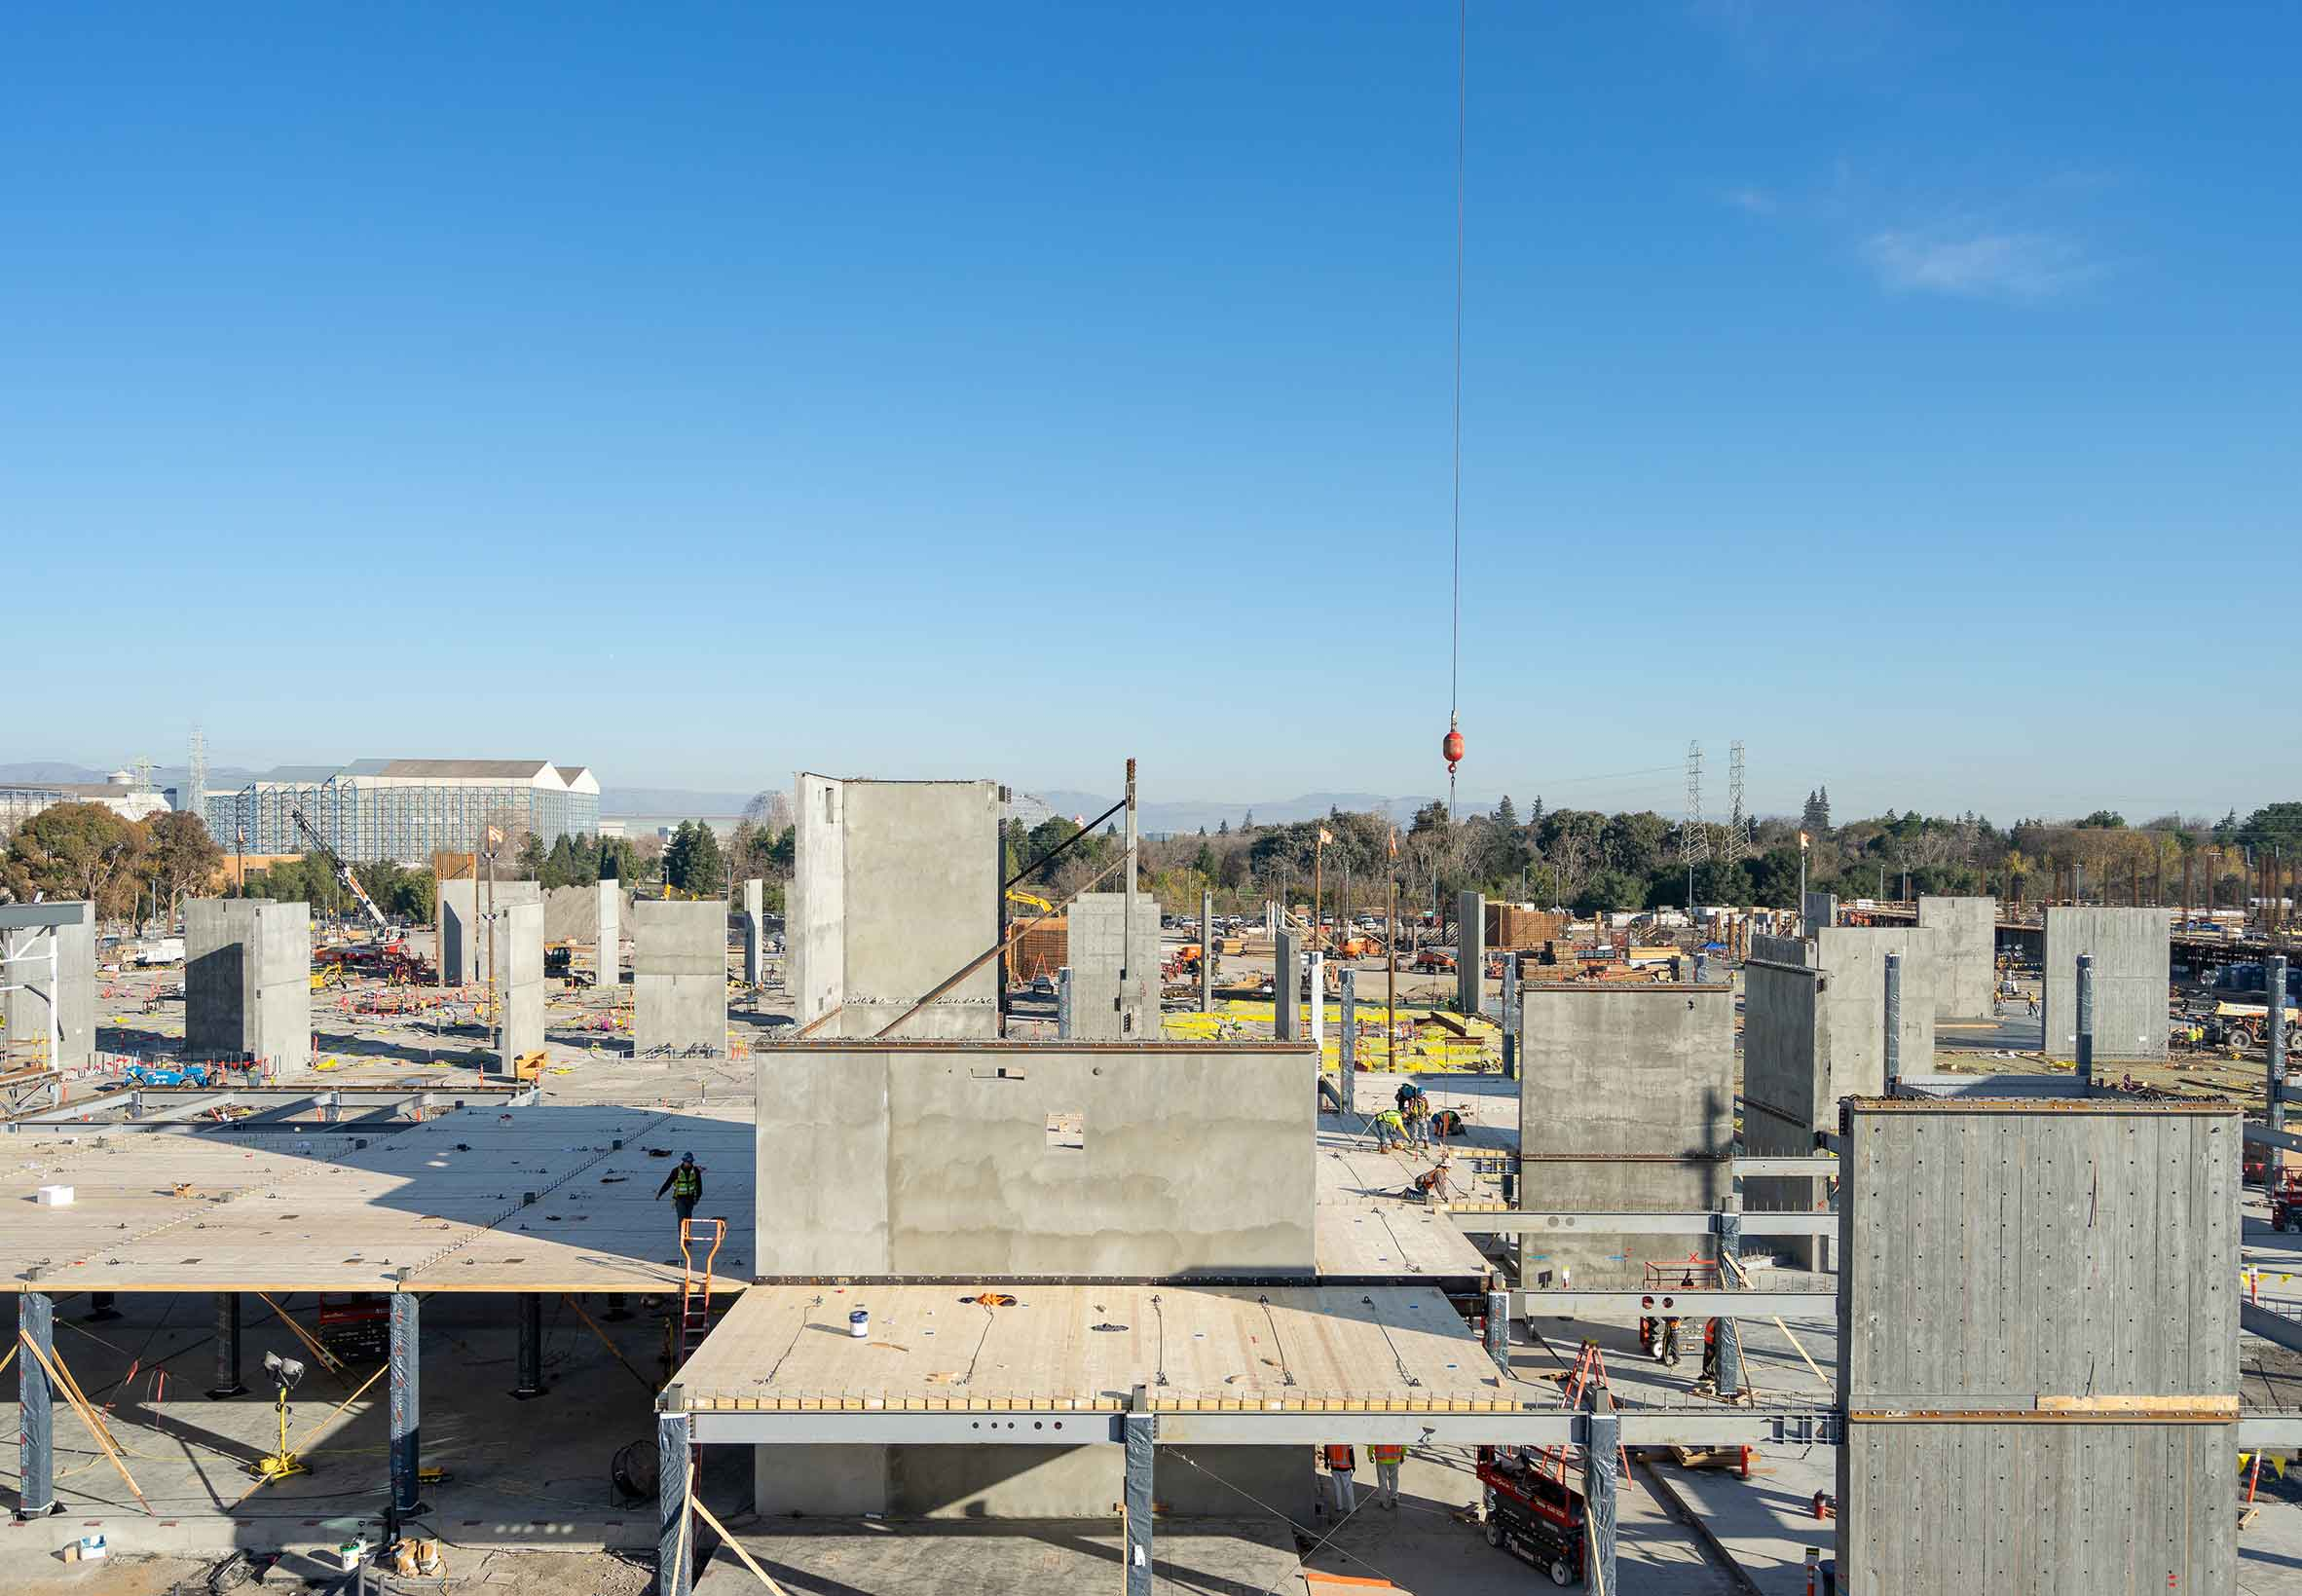 Cross-Laminated Timber (CLT) Construction at Confidential Corporate Campus in Silicon Valley, California